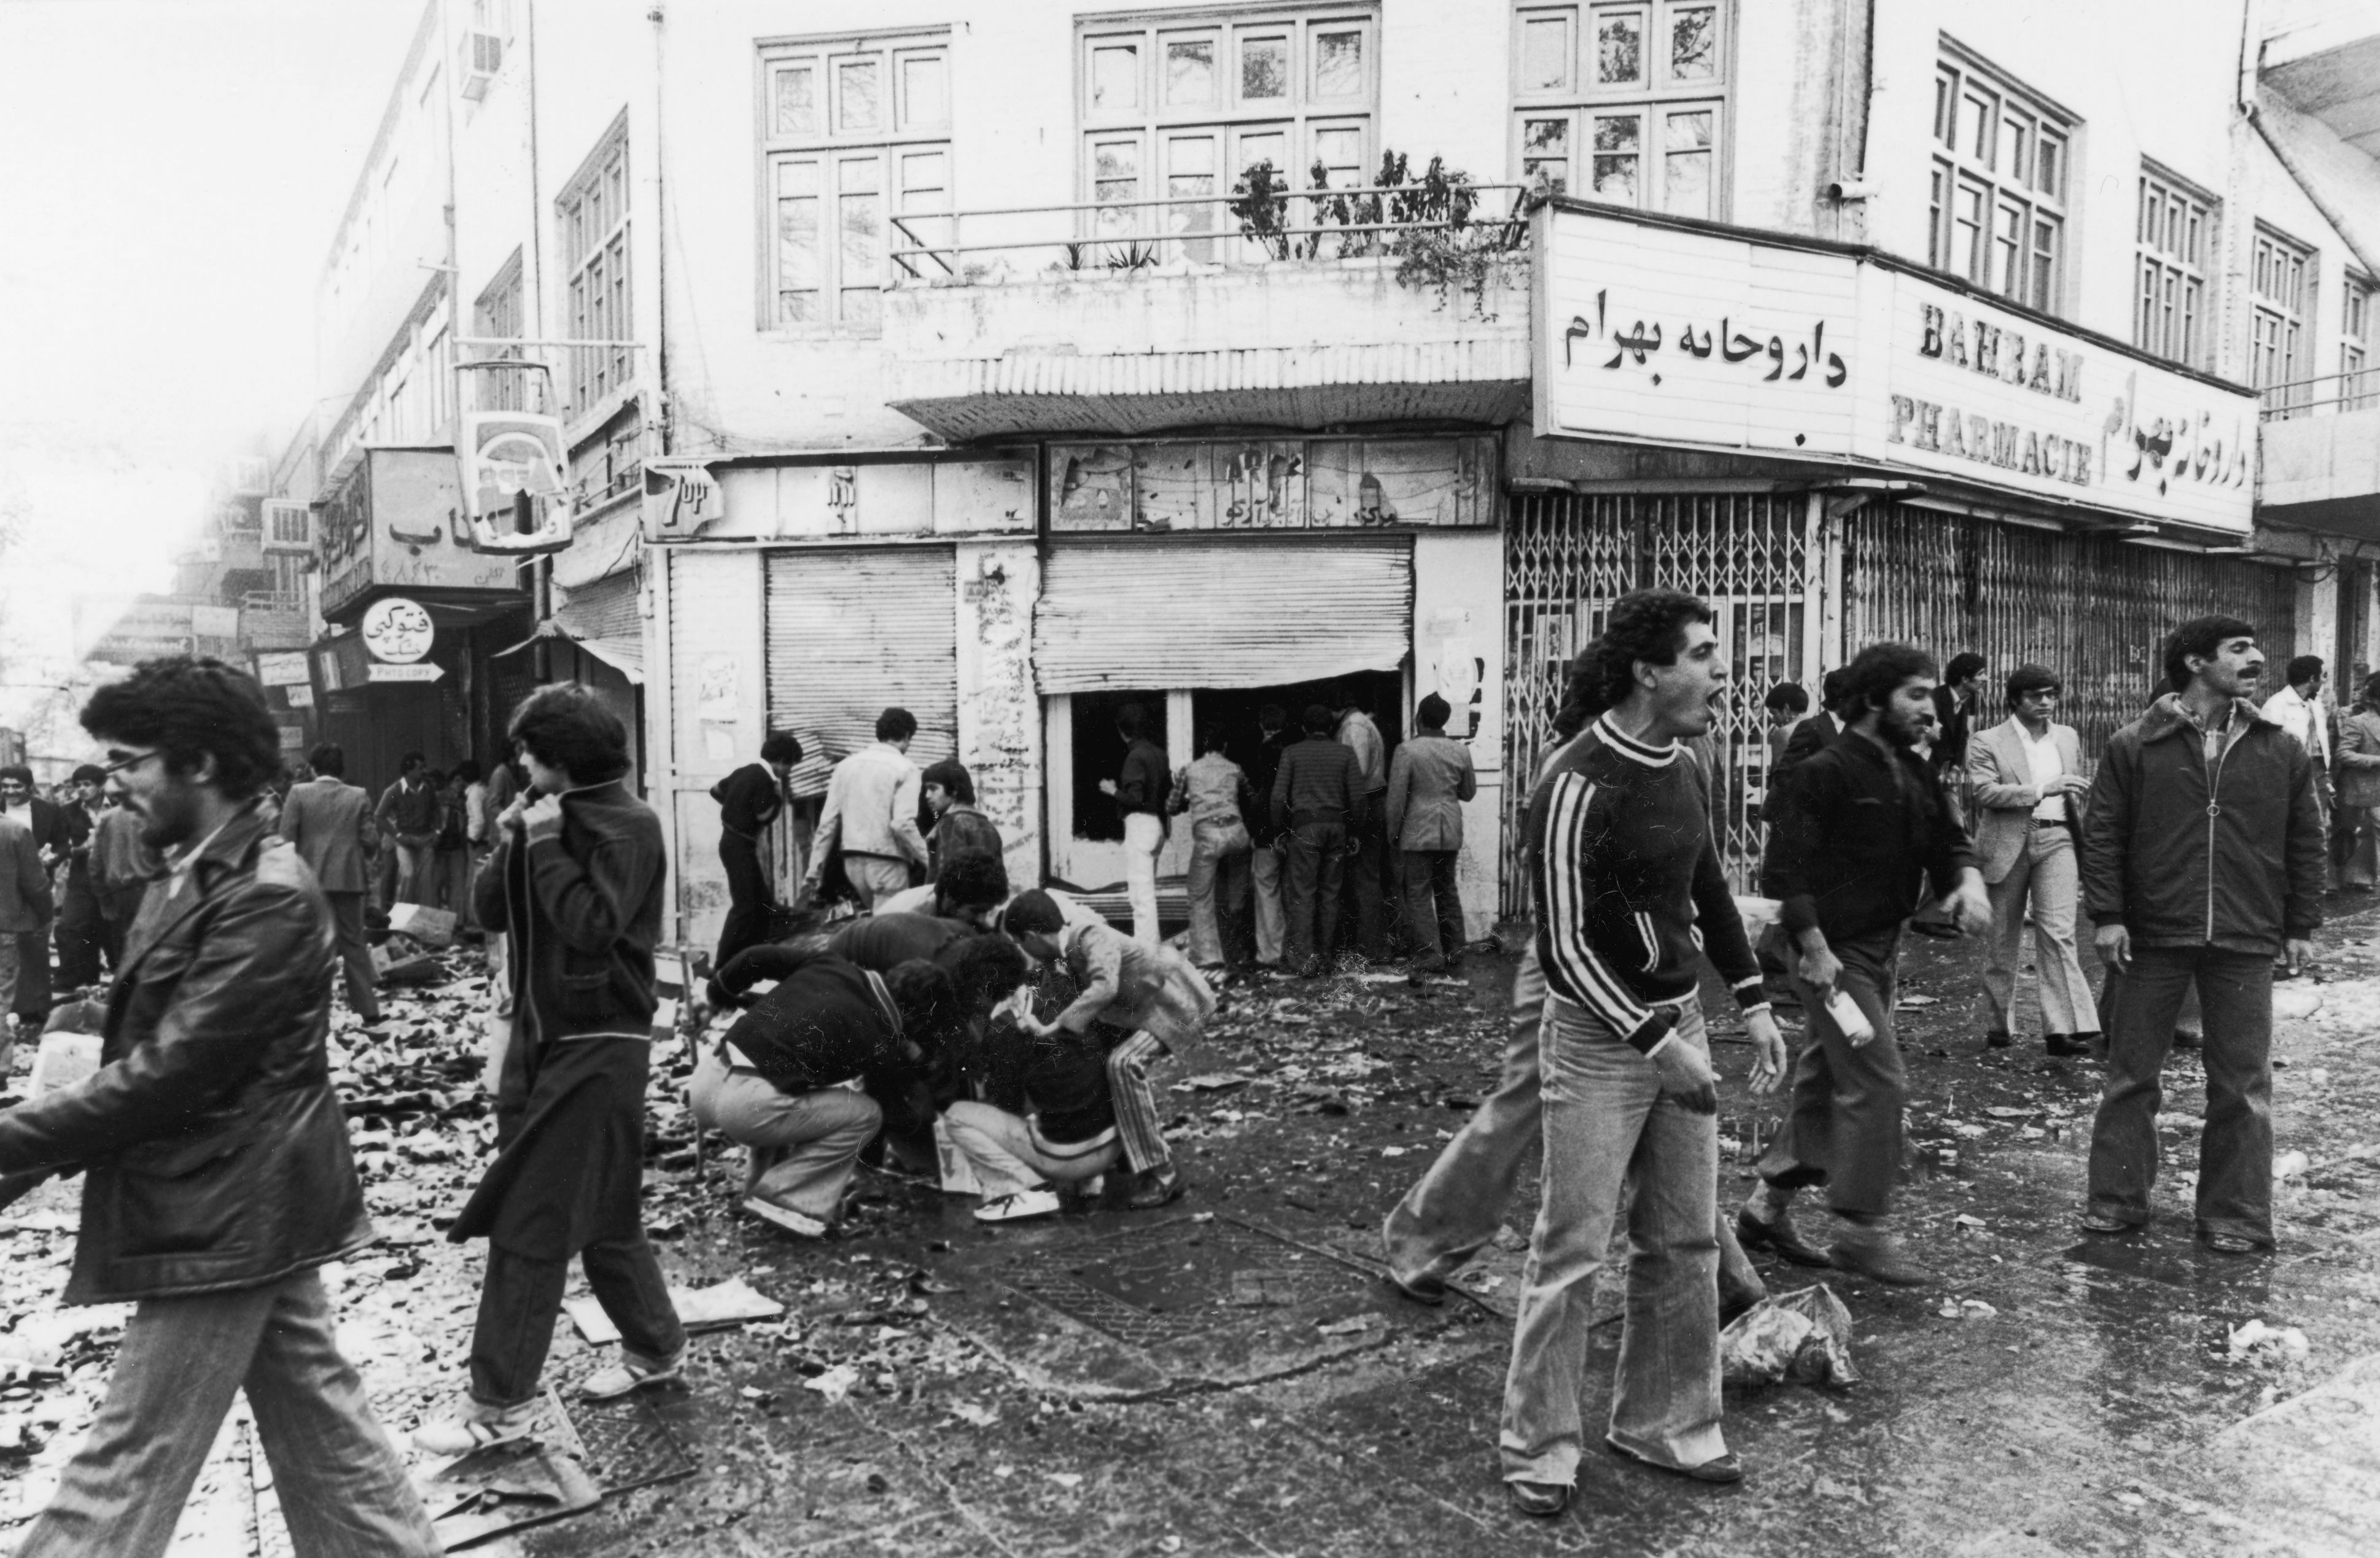 4th November 1978 People gather around a casualty while others loot a shop after a riot in Tehran